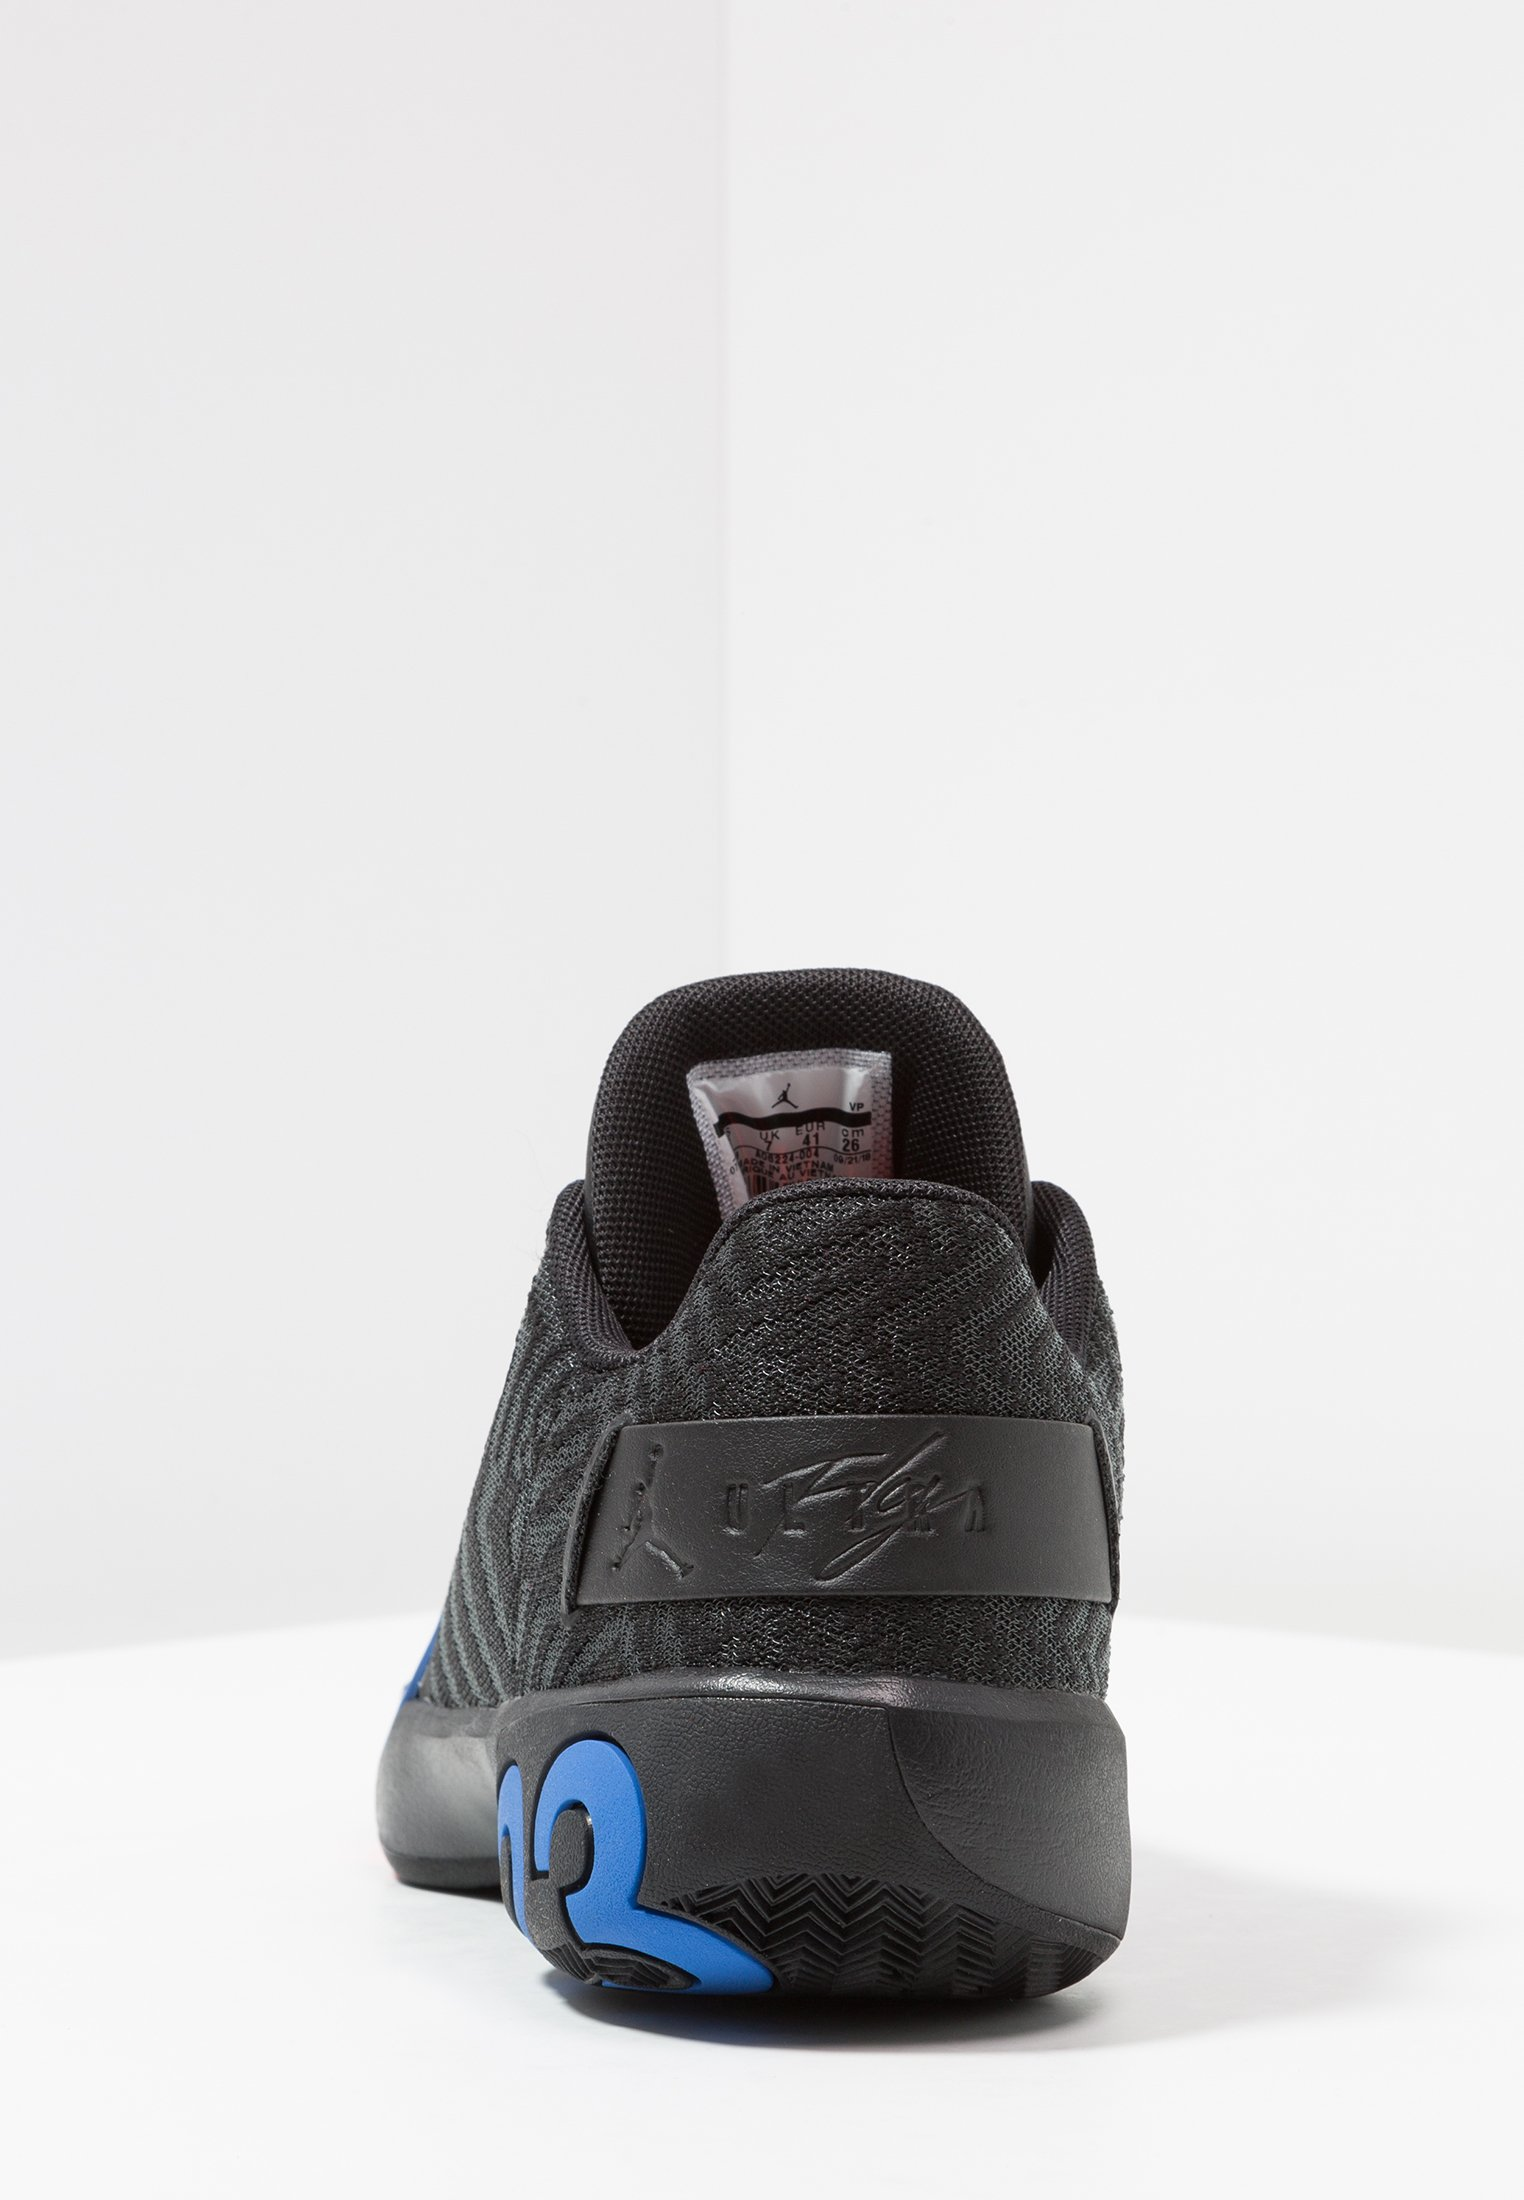 ULTRA FLY 3 LOW Chaussures de basket blackpacific bluebright crimson